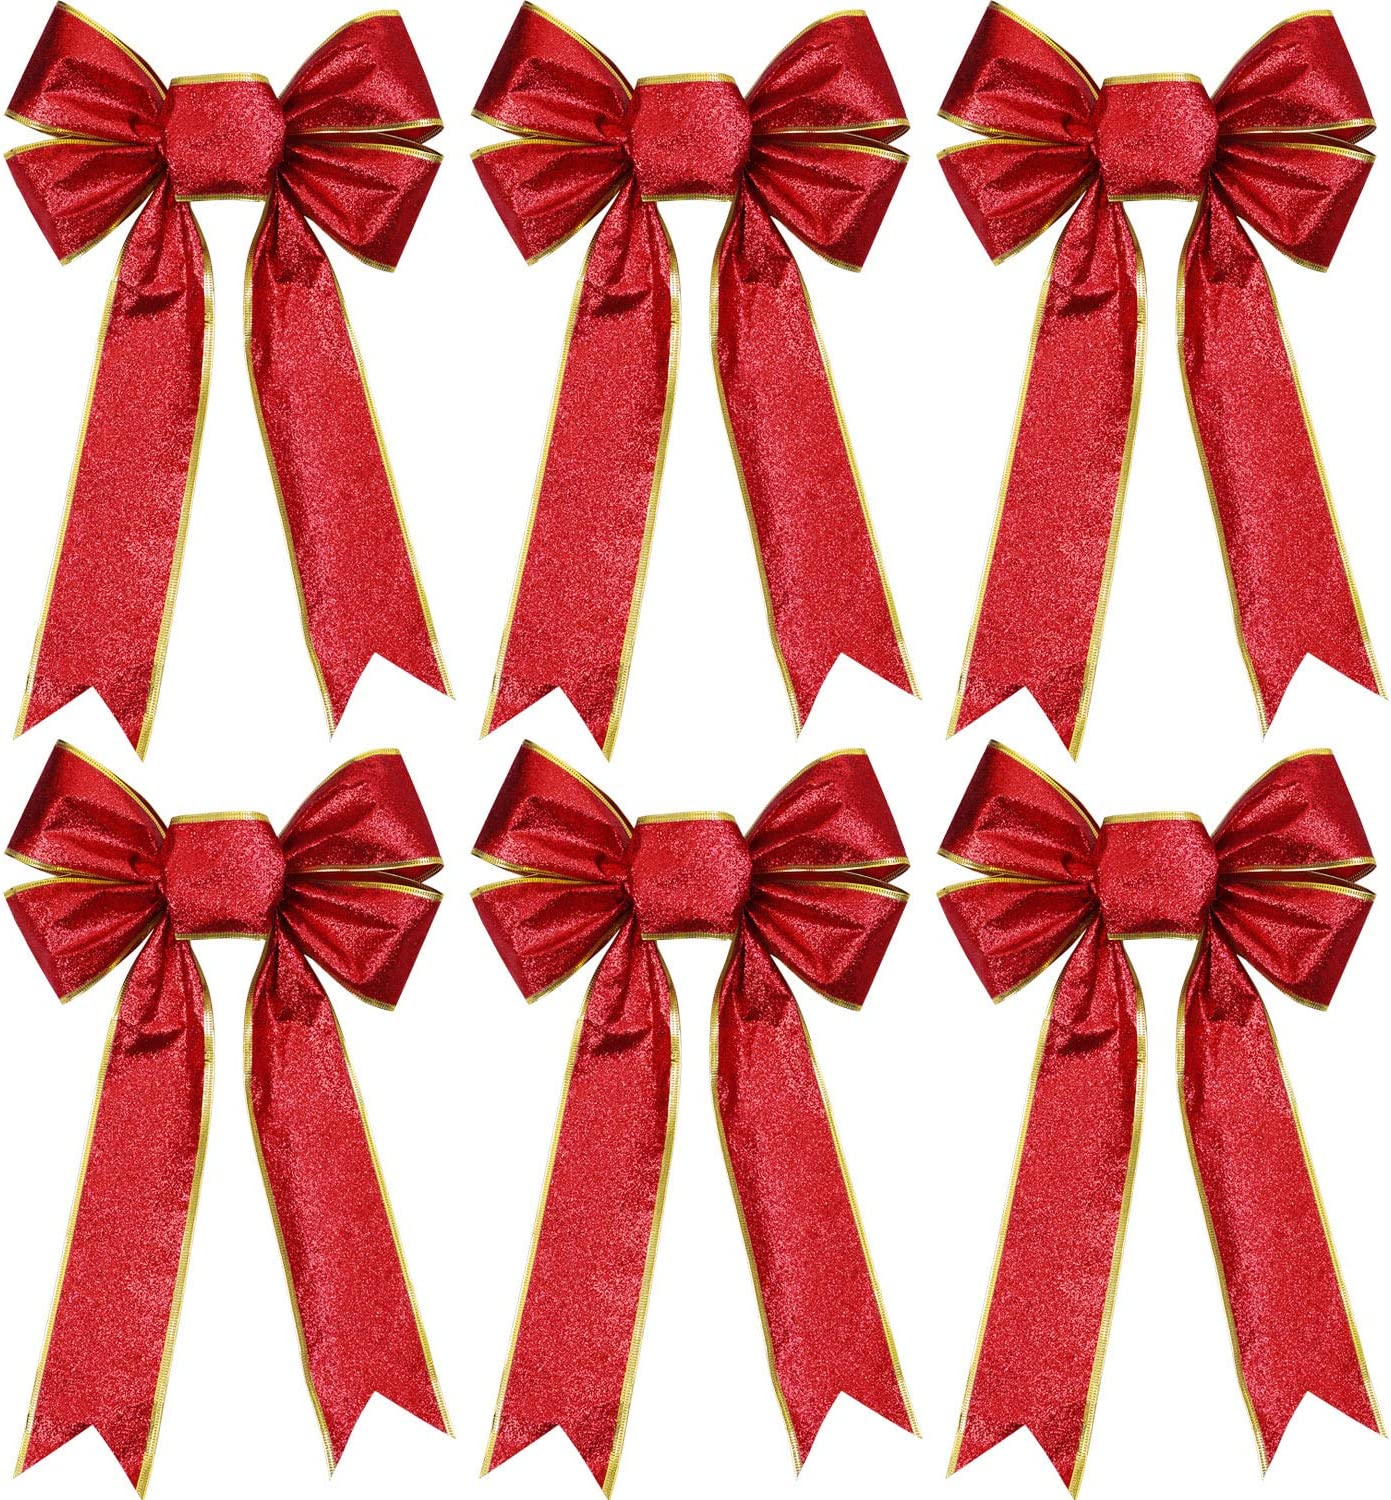 Aneco 6 Pieces Glitter Christmas Ribbon Bows Christmas Wreath Bows for Christmas Decoration or Home Decor, 9 x 12 Inches